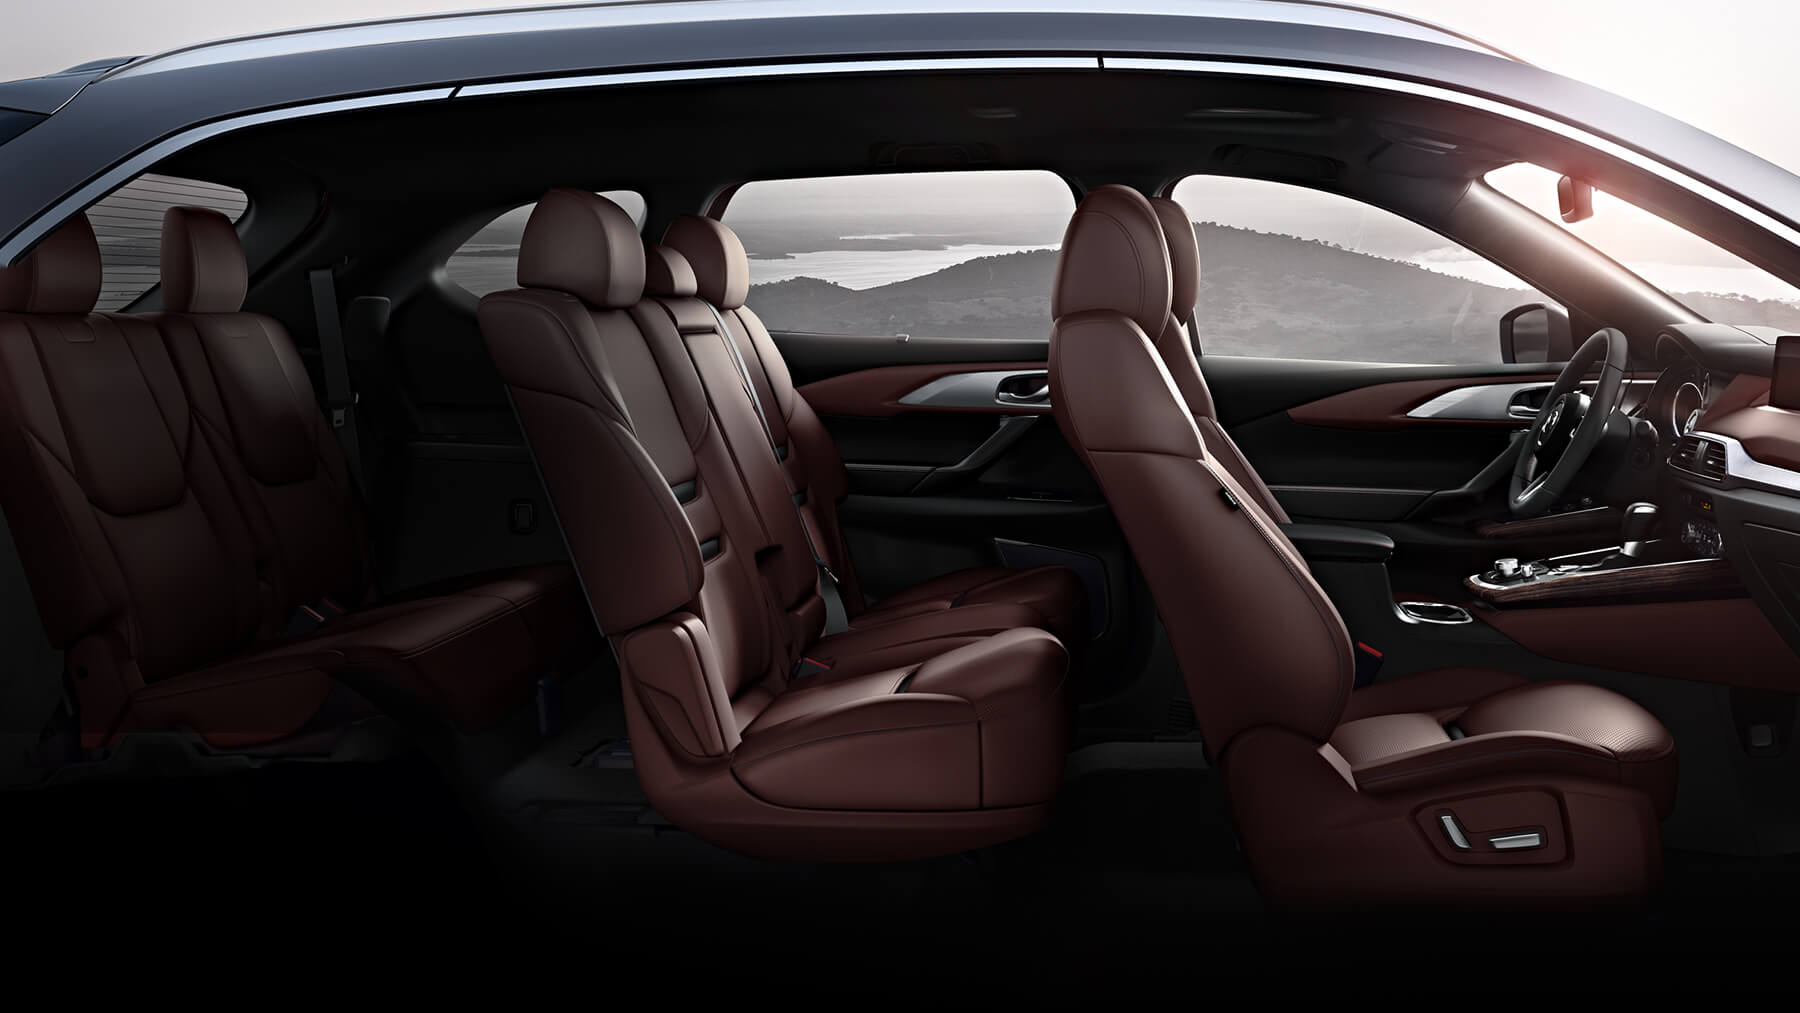 Vast 3-row Seating within the CX-9